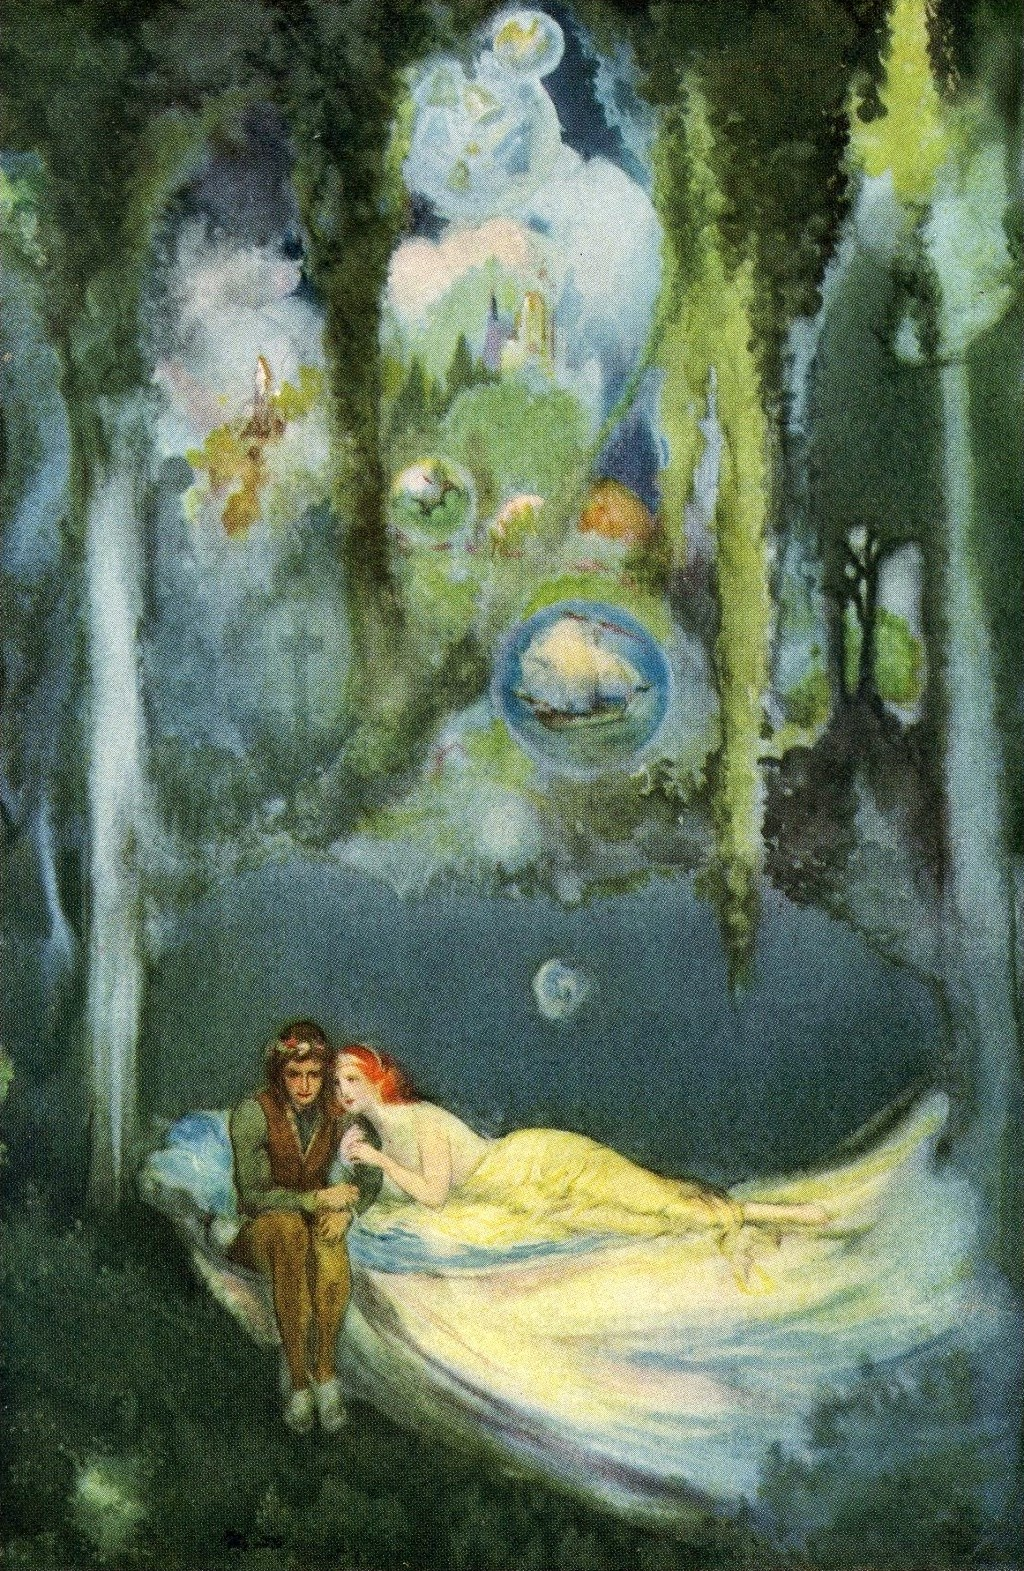 the norse mythology blog org 2015 articles myth legend in wagner s tannhaumluser part two